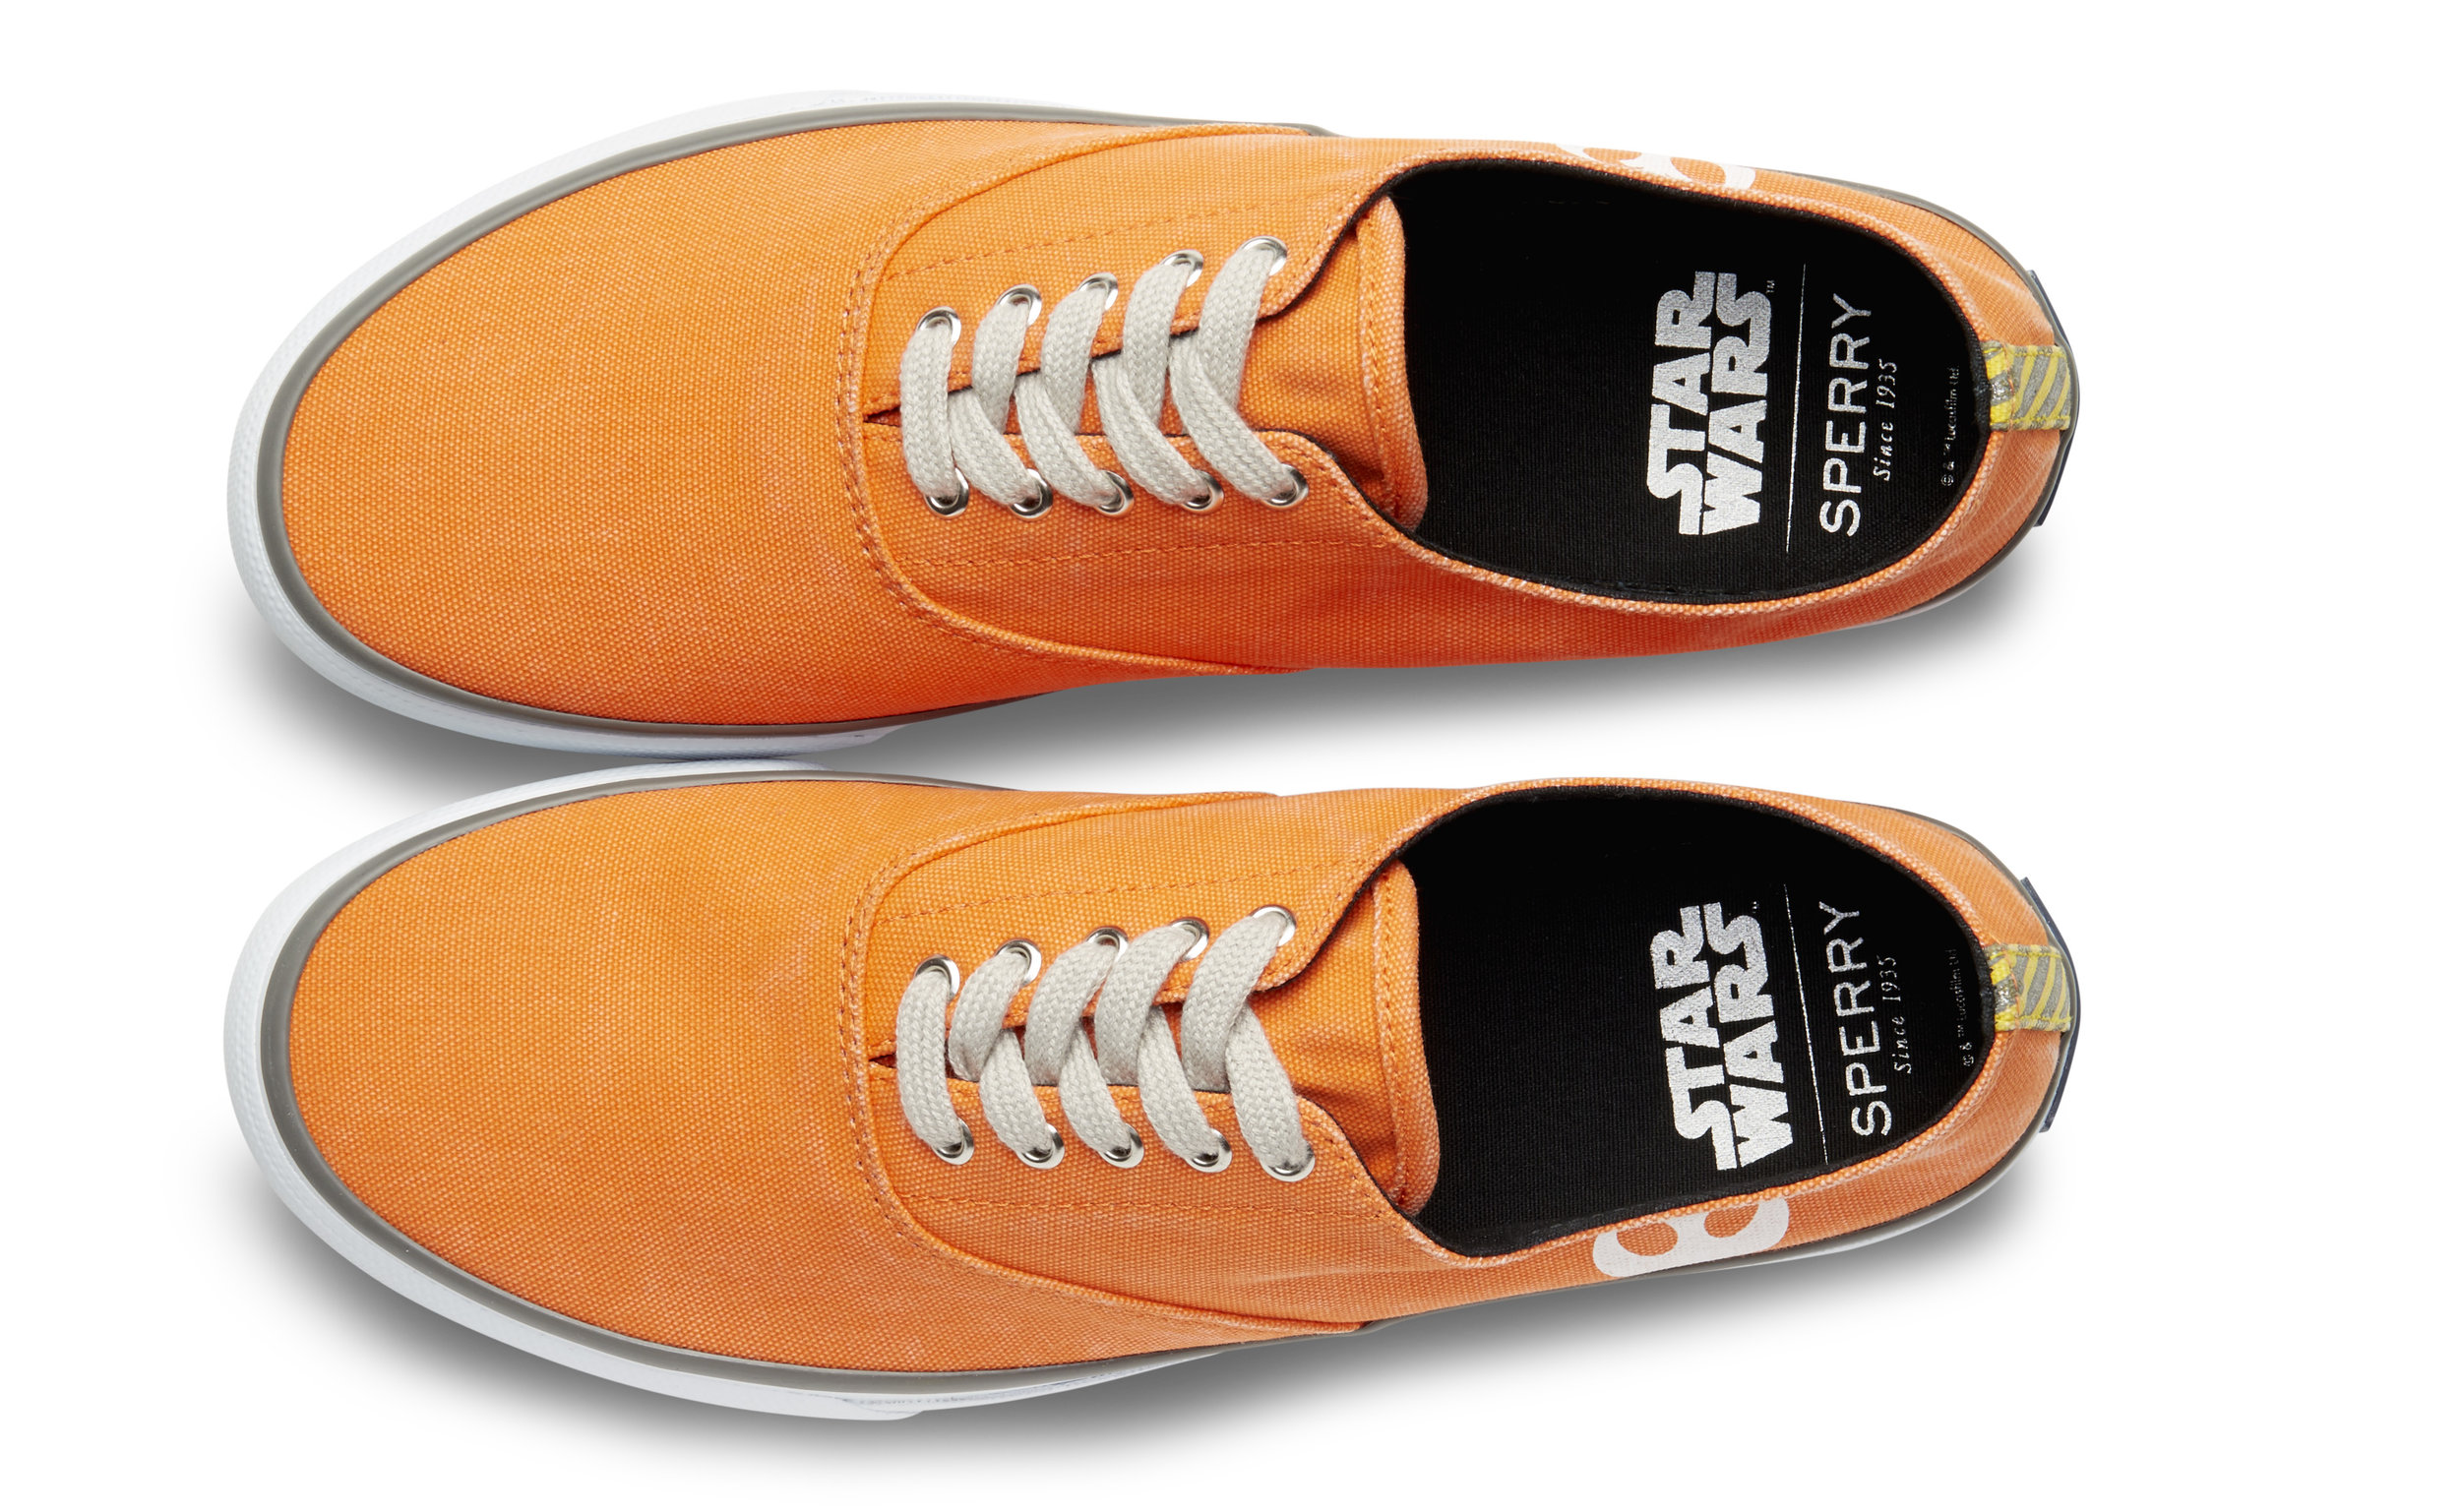 check-out-this-cool-line-of-star-wars-themed-shoes-from-sperry12.jpg